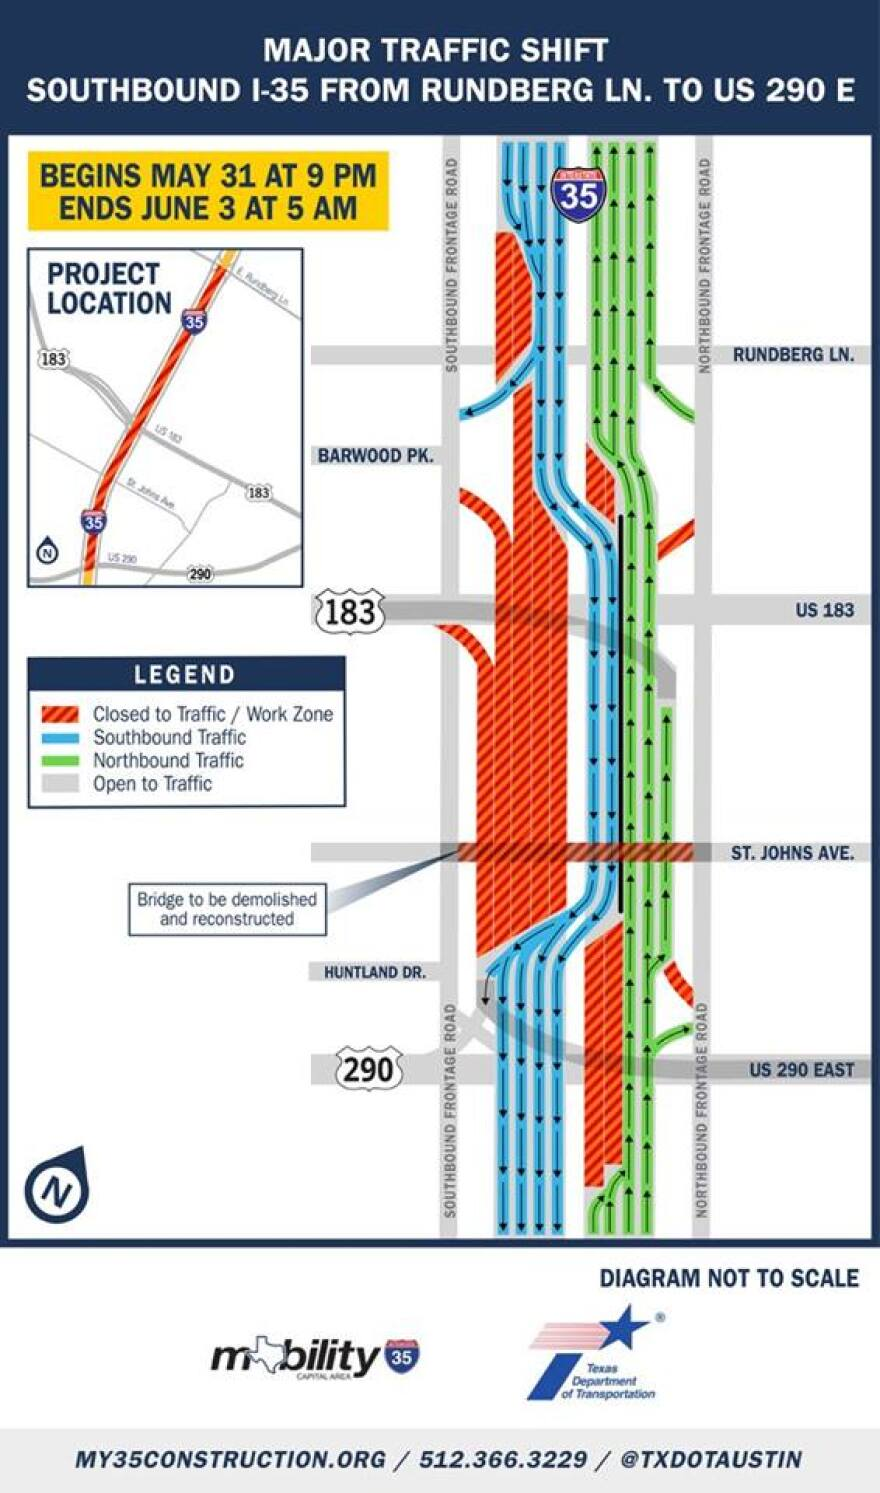 The bottom line from TxDOT: Don't take I-35 if you have another option.